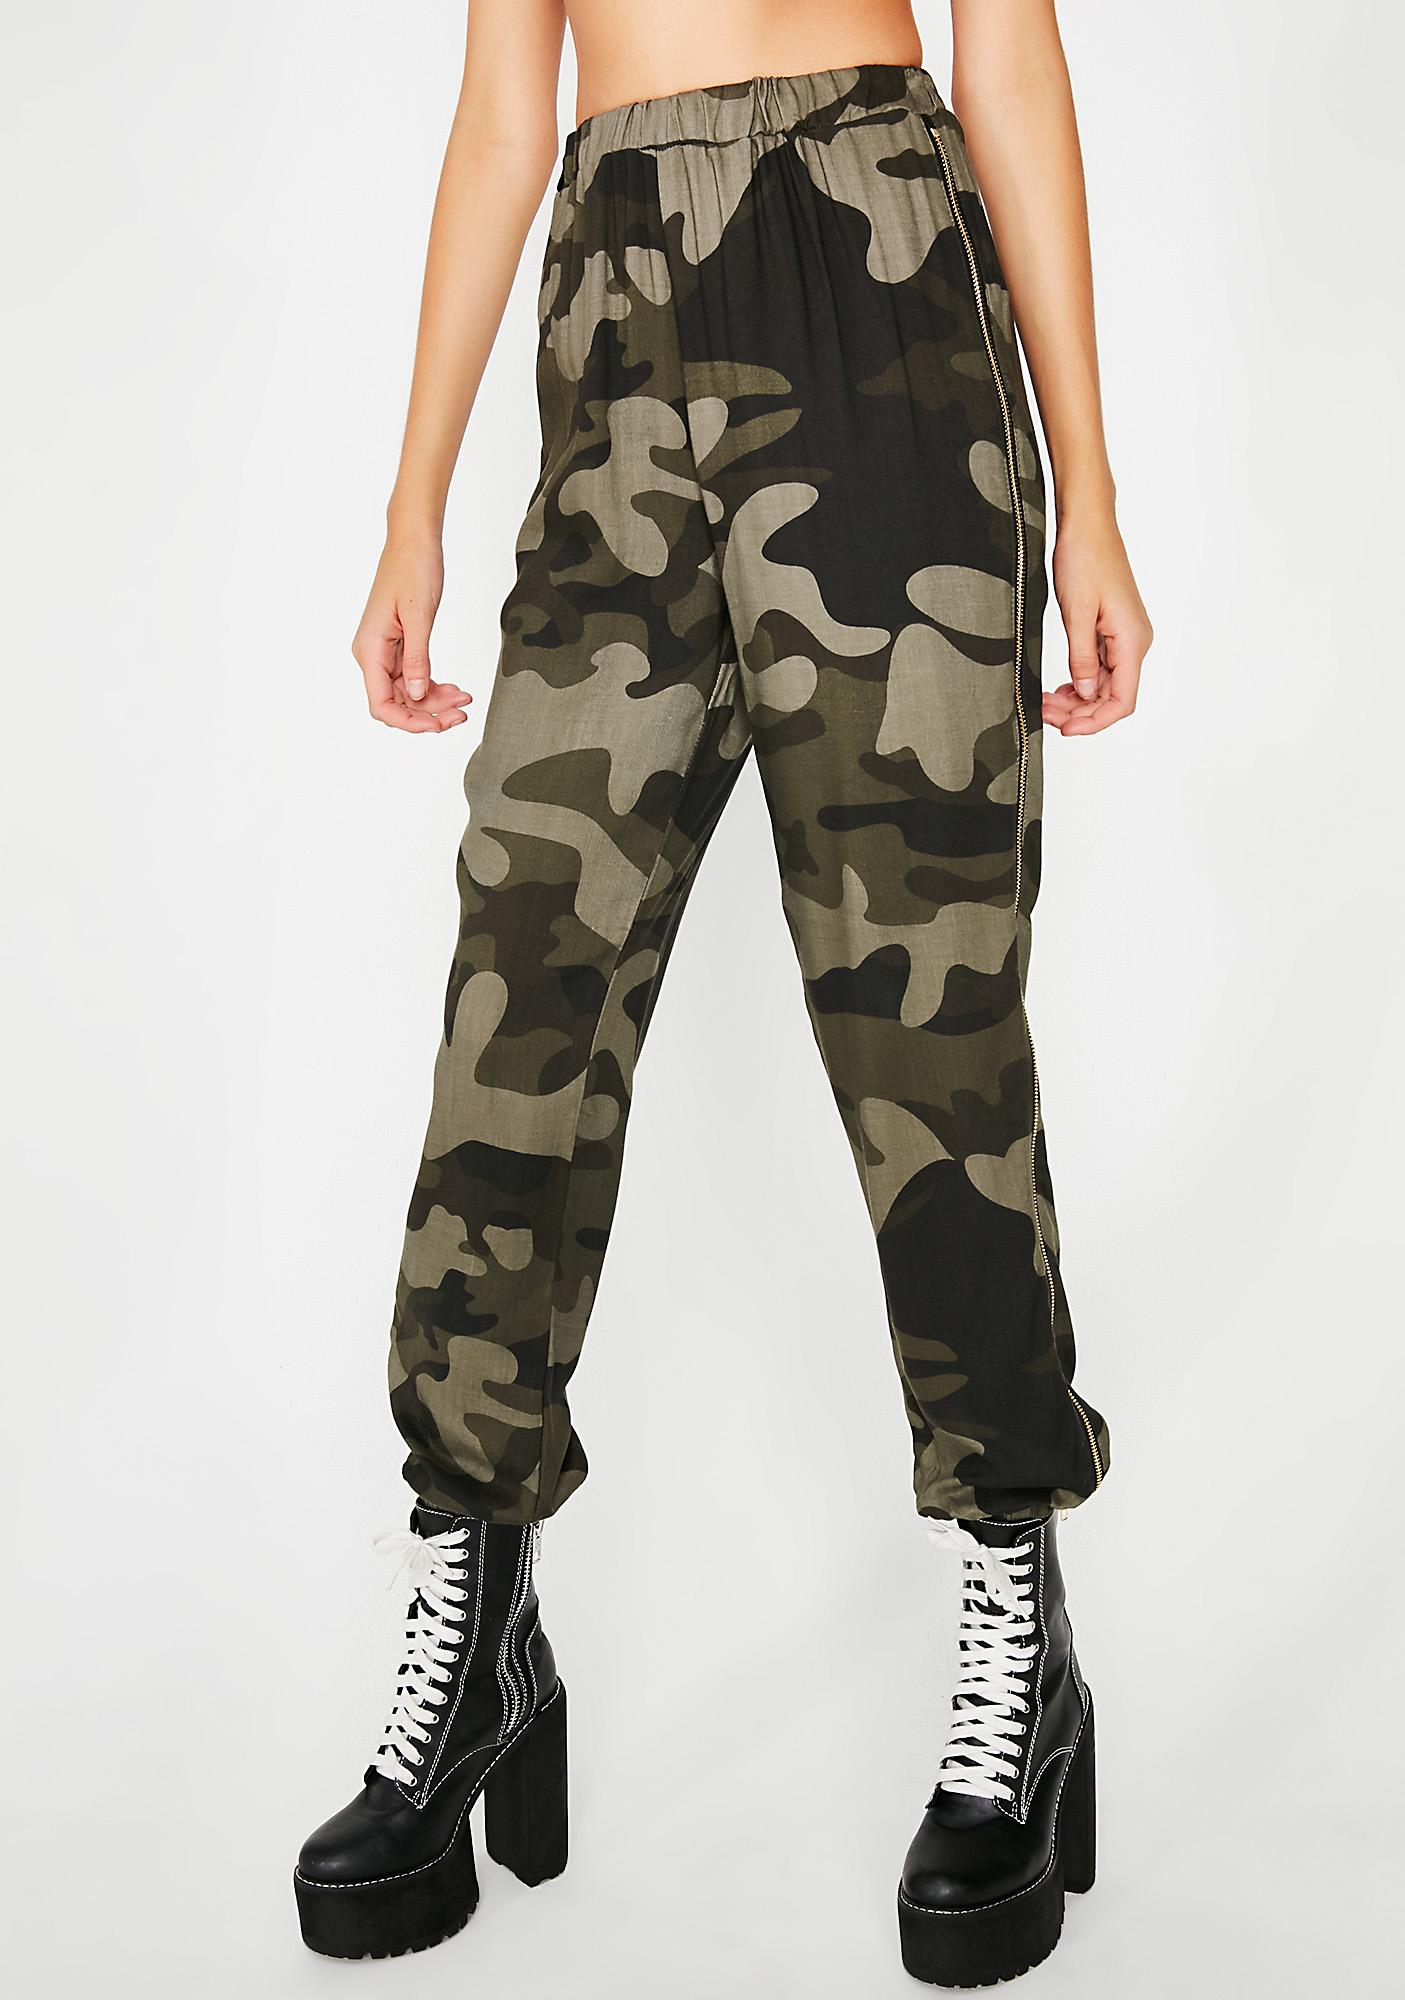 Out Of Vision Camo Pants